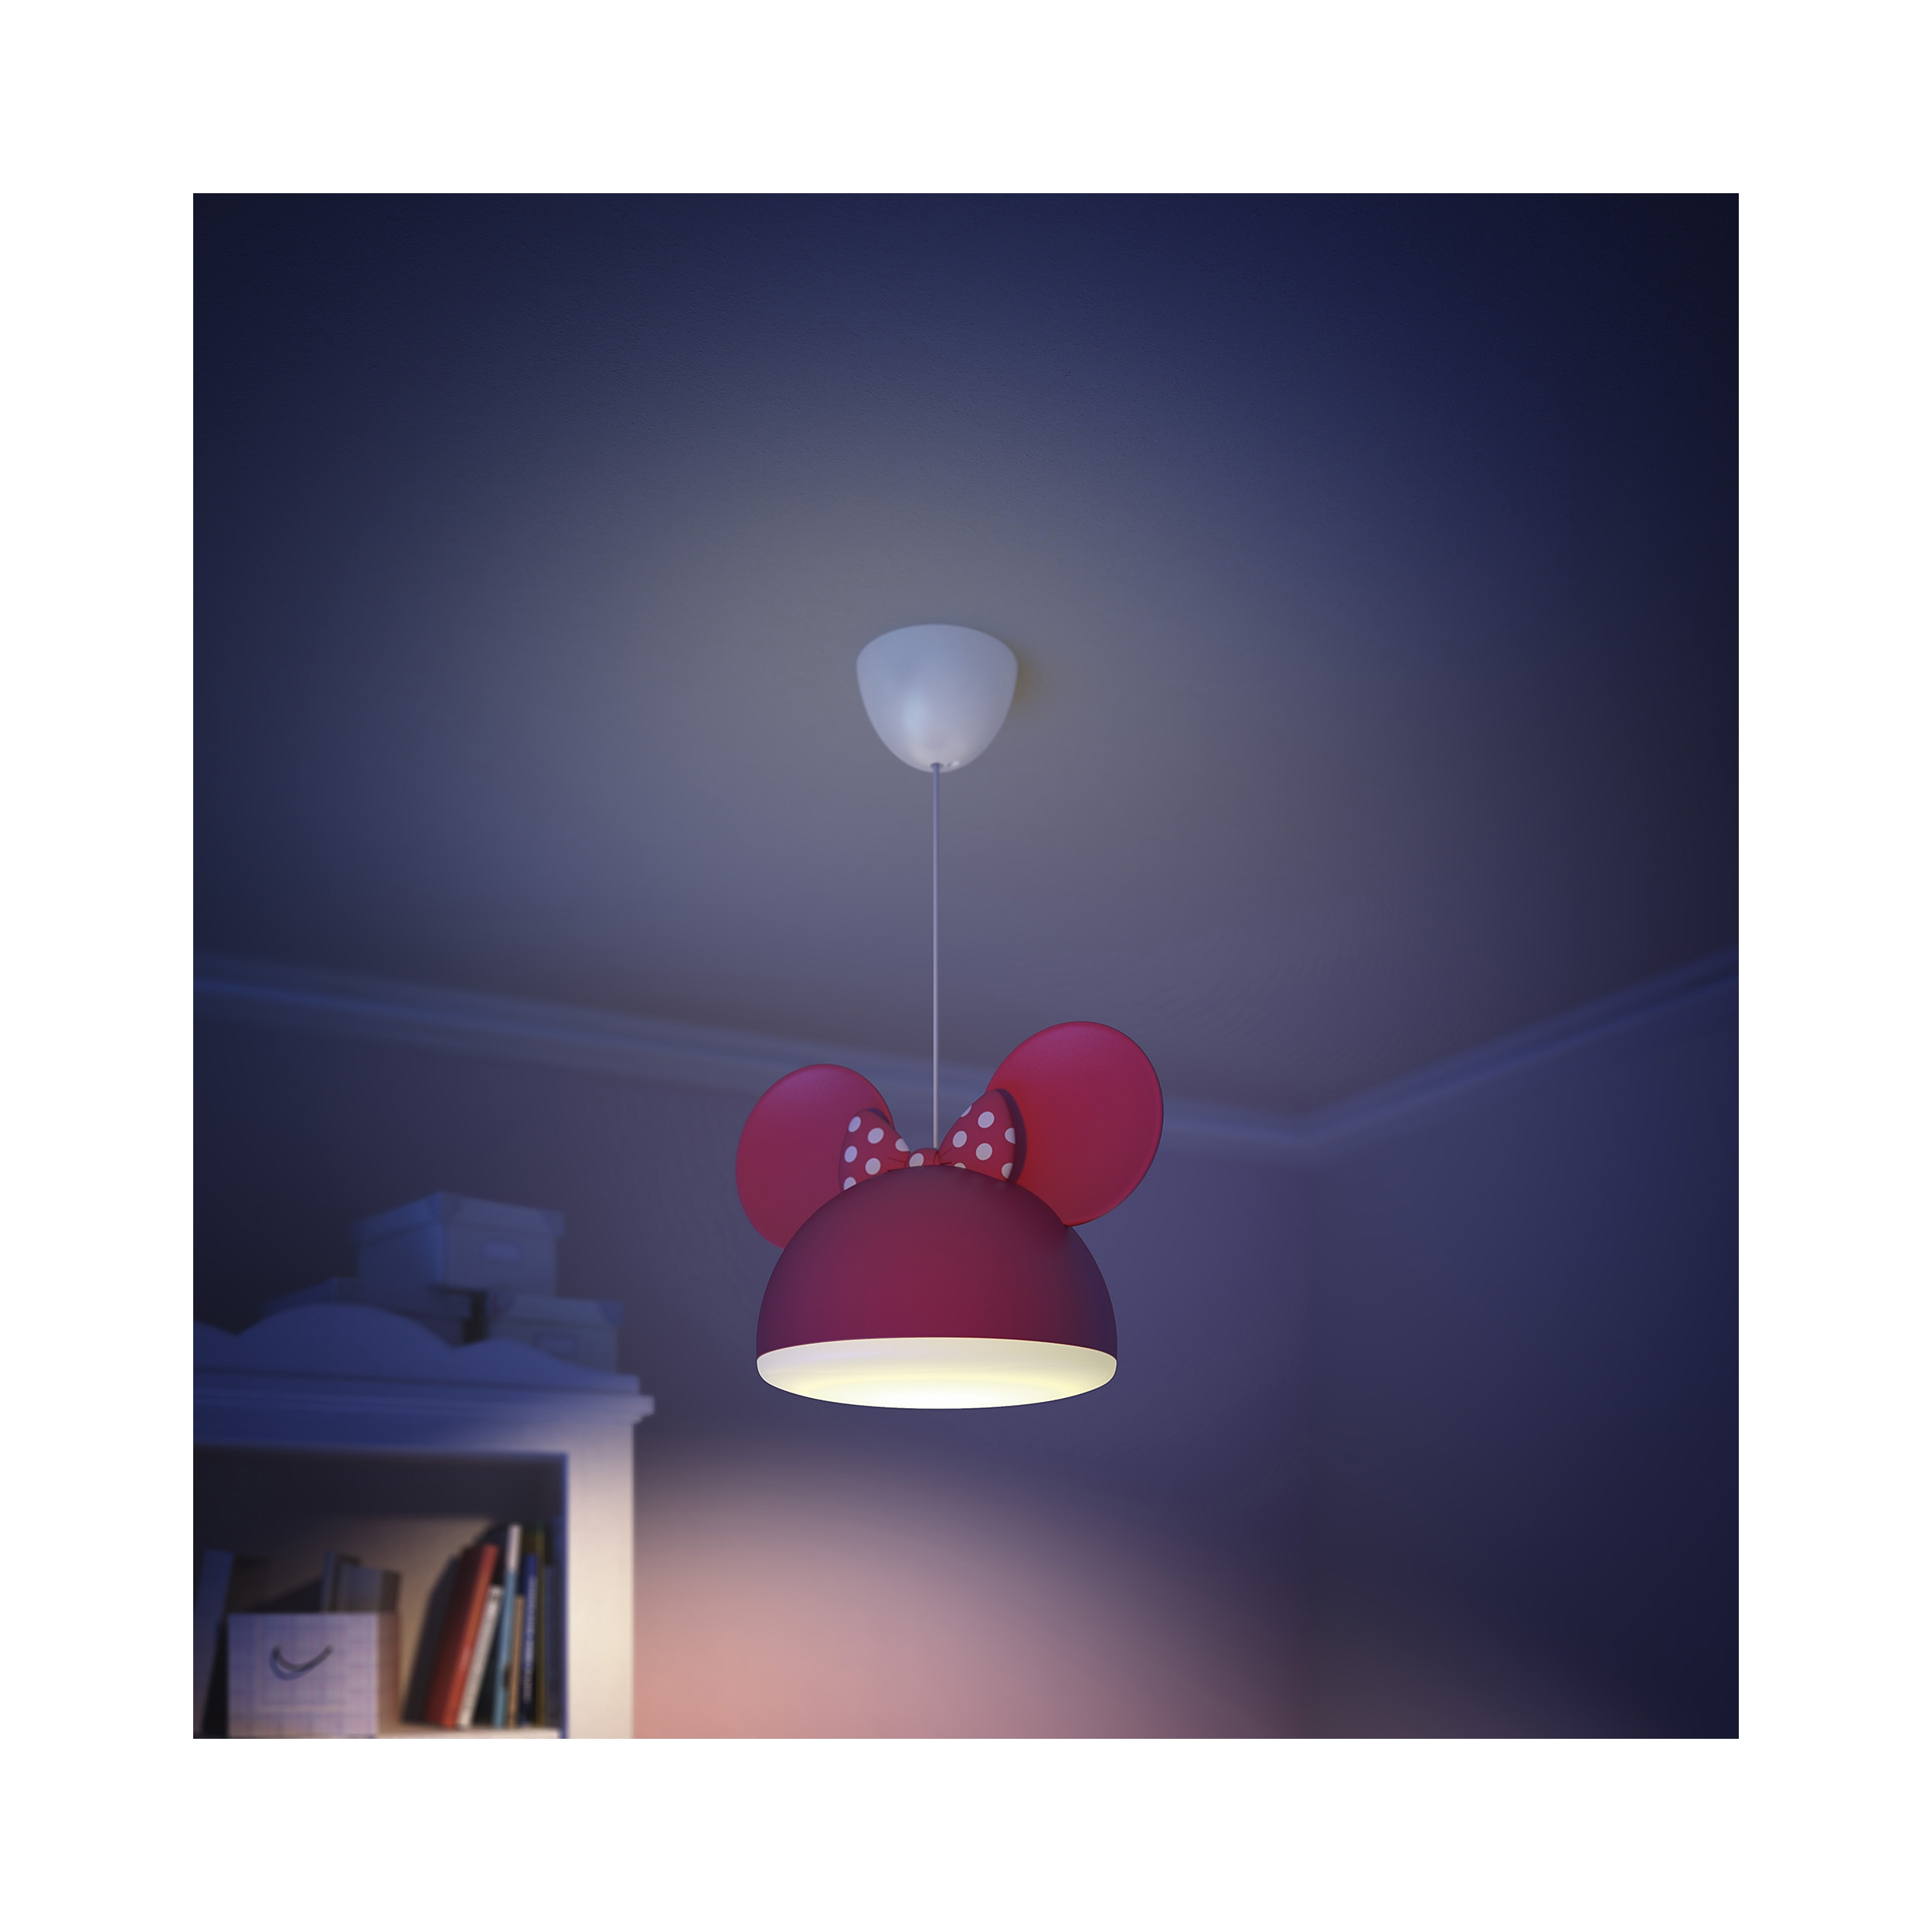 philips disney eclairage suspension minnie lampe chambre d 39 enfant 717583116. Black Bedroom Furniture Sets. Home Design Ideas